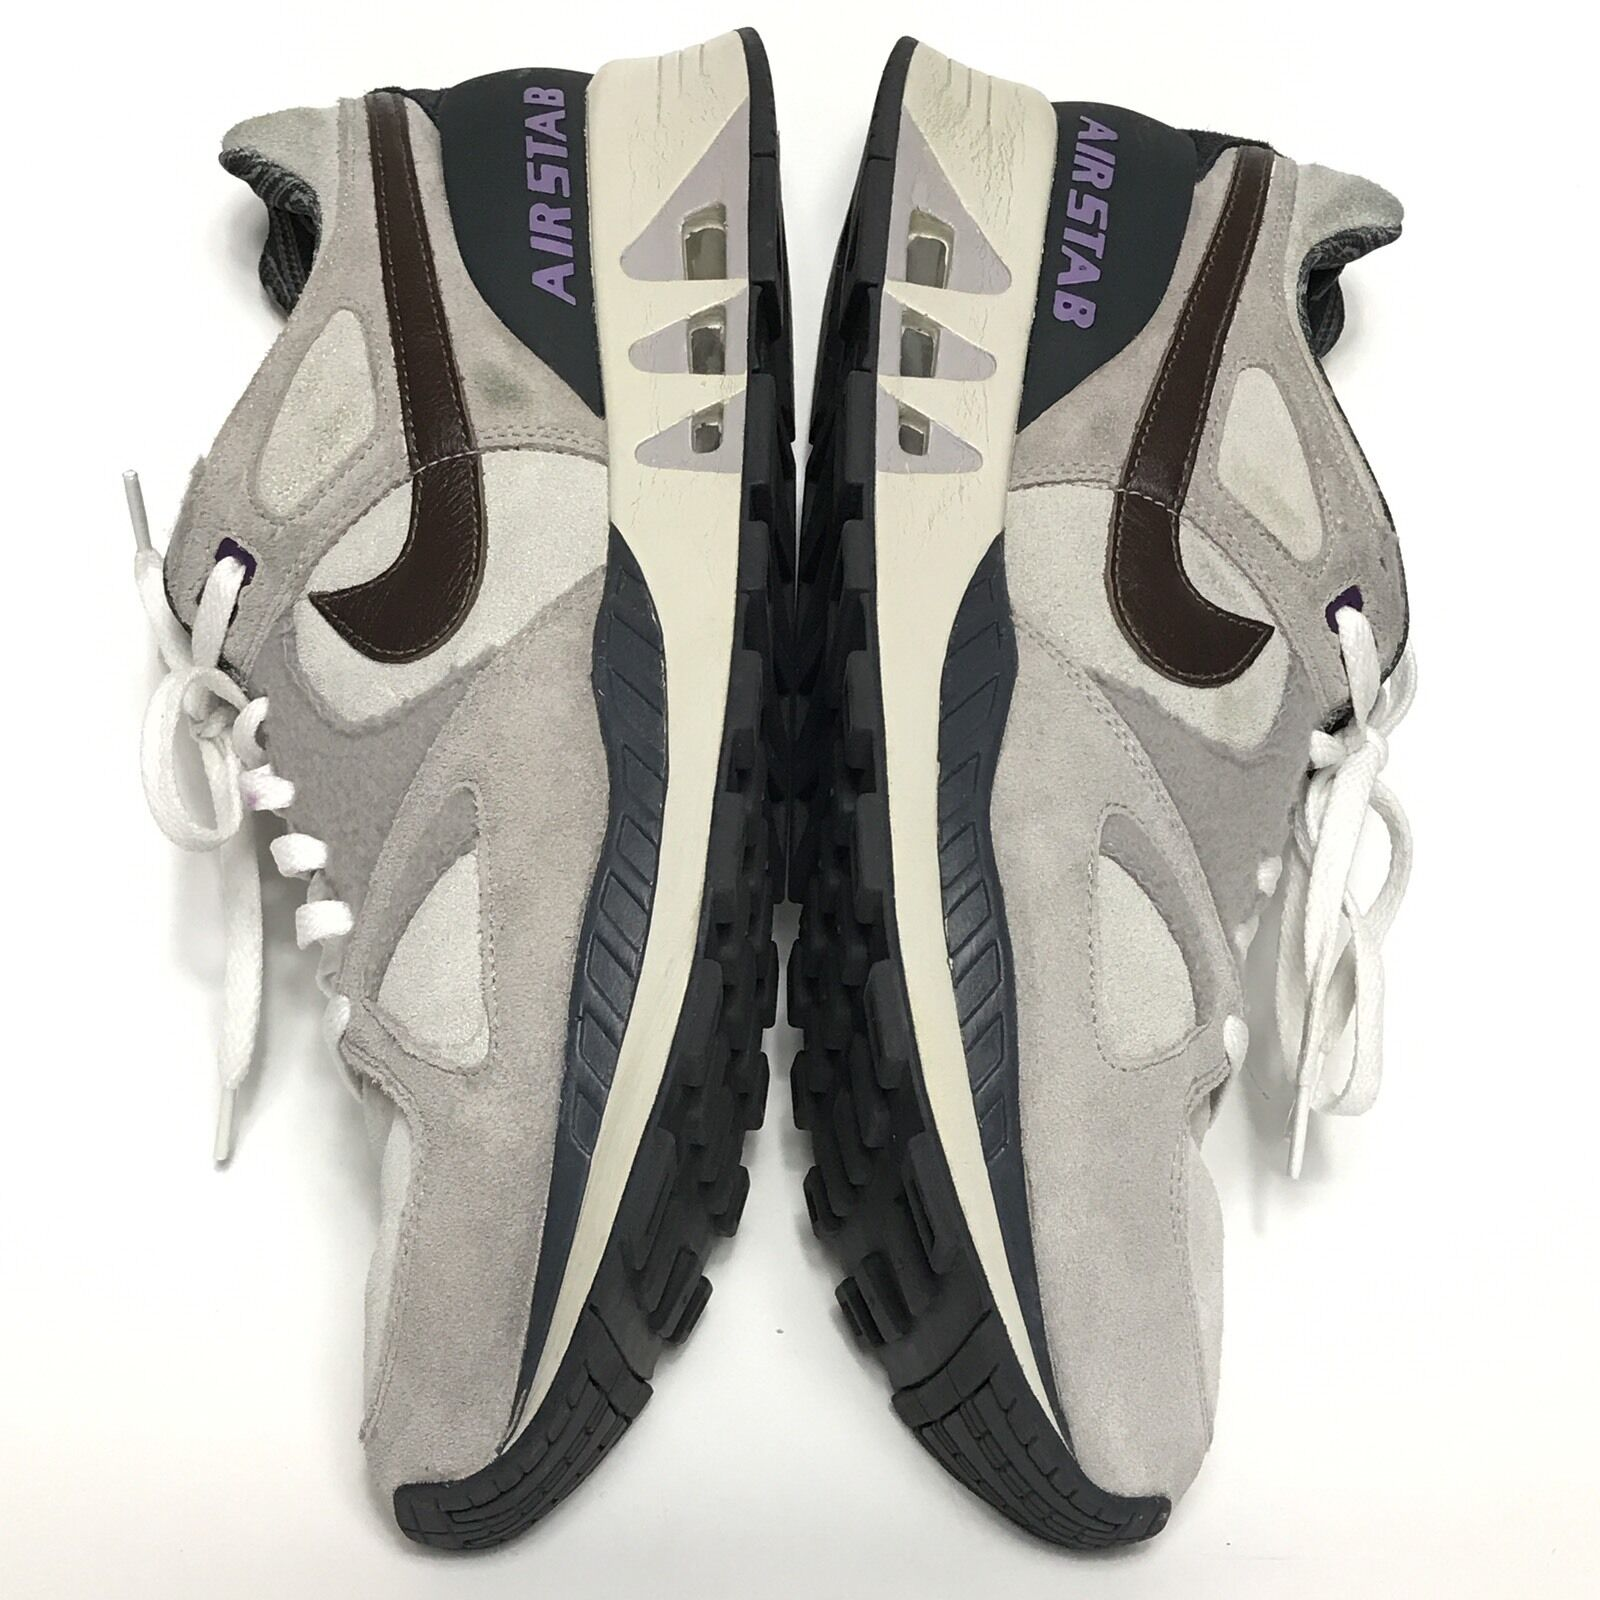 2006 Nike Air Stab  Schuhes Uomo 14 US Athletic Schuhes  Sneakers Purple Gray Air Force AF1 73edf1